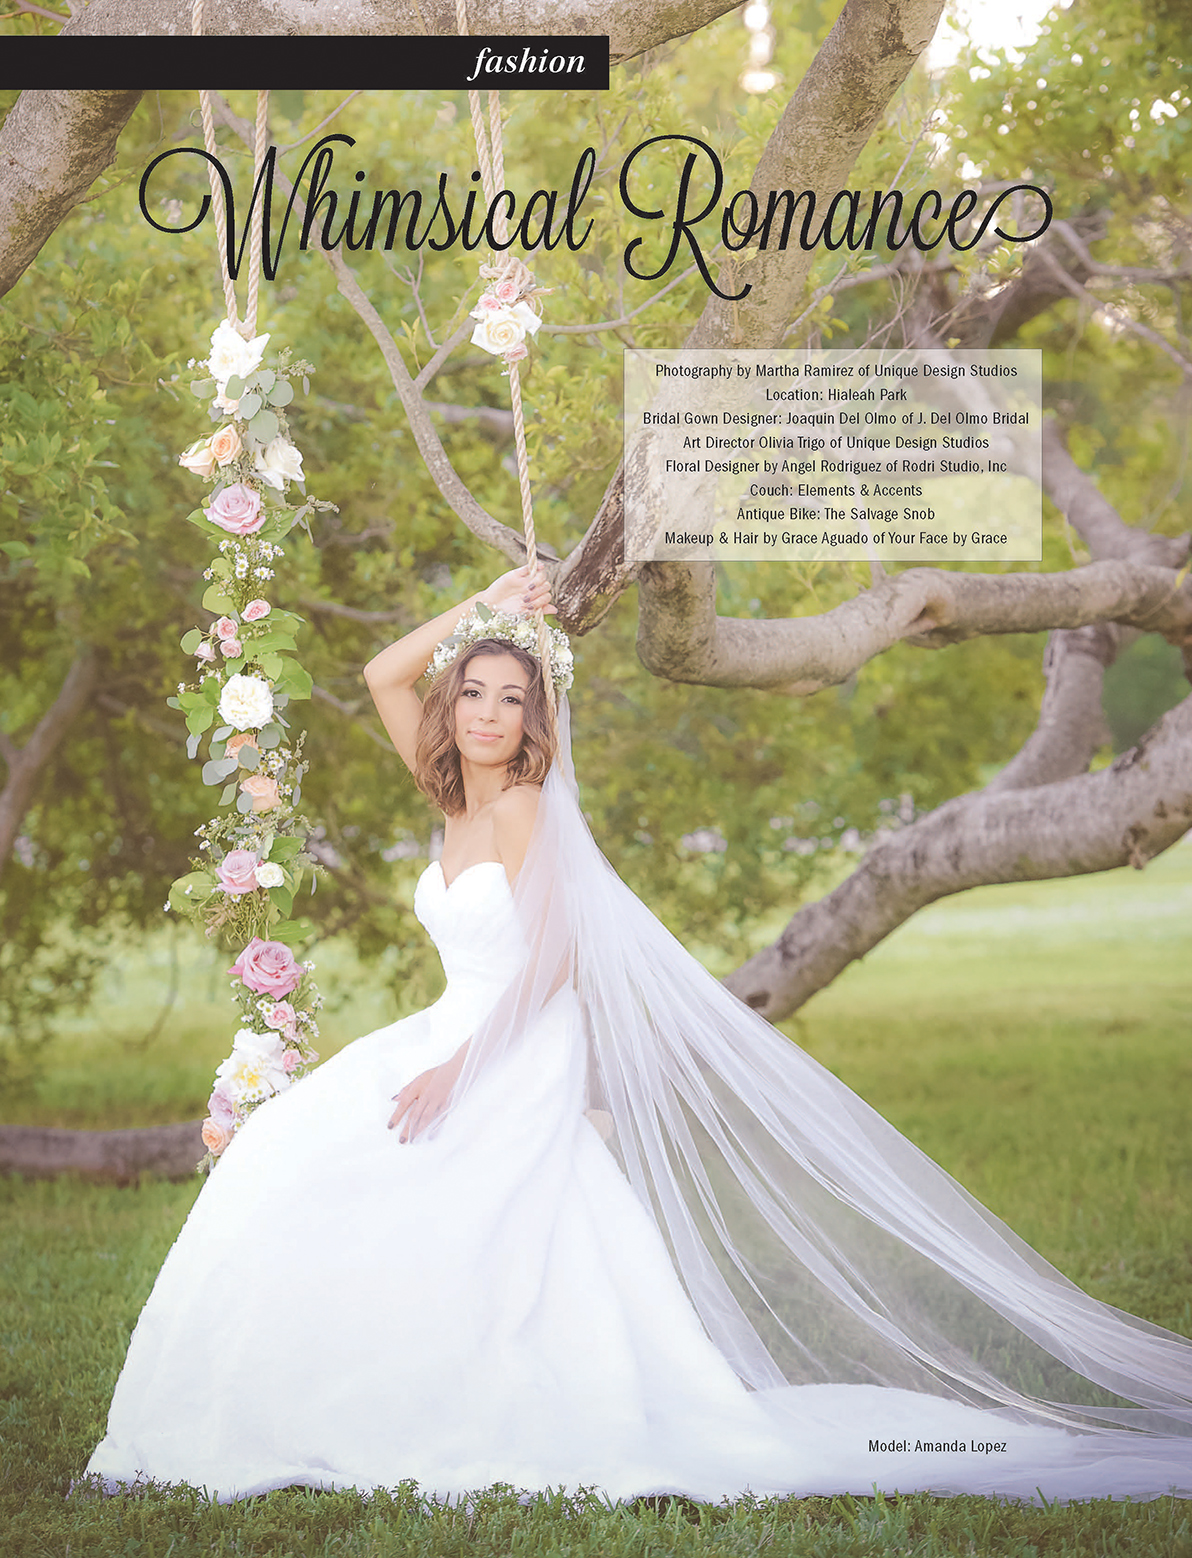 Whimsical Romance | ENCHANTED BRIDES